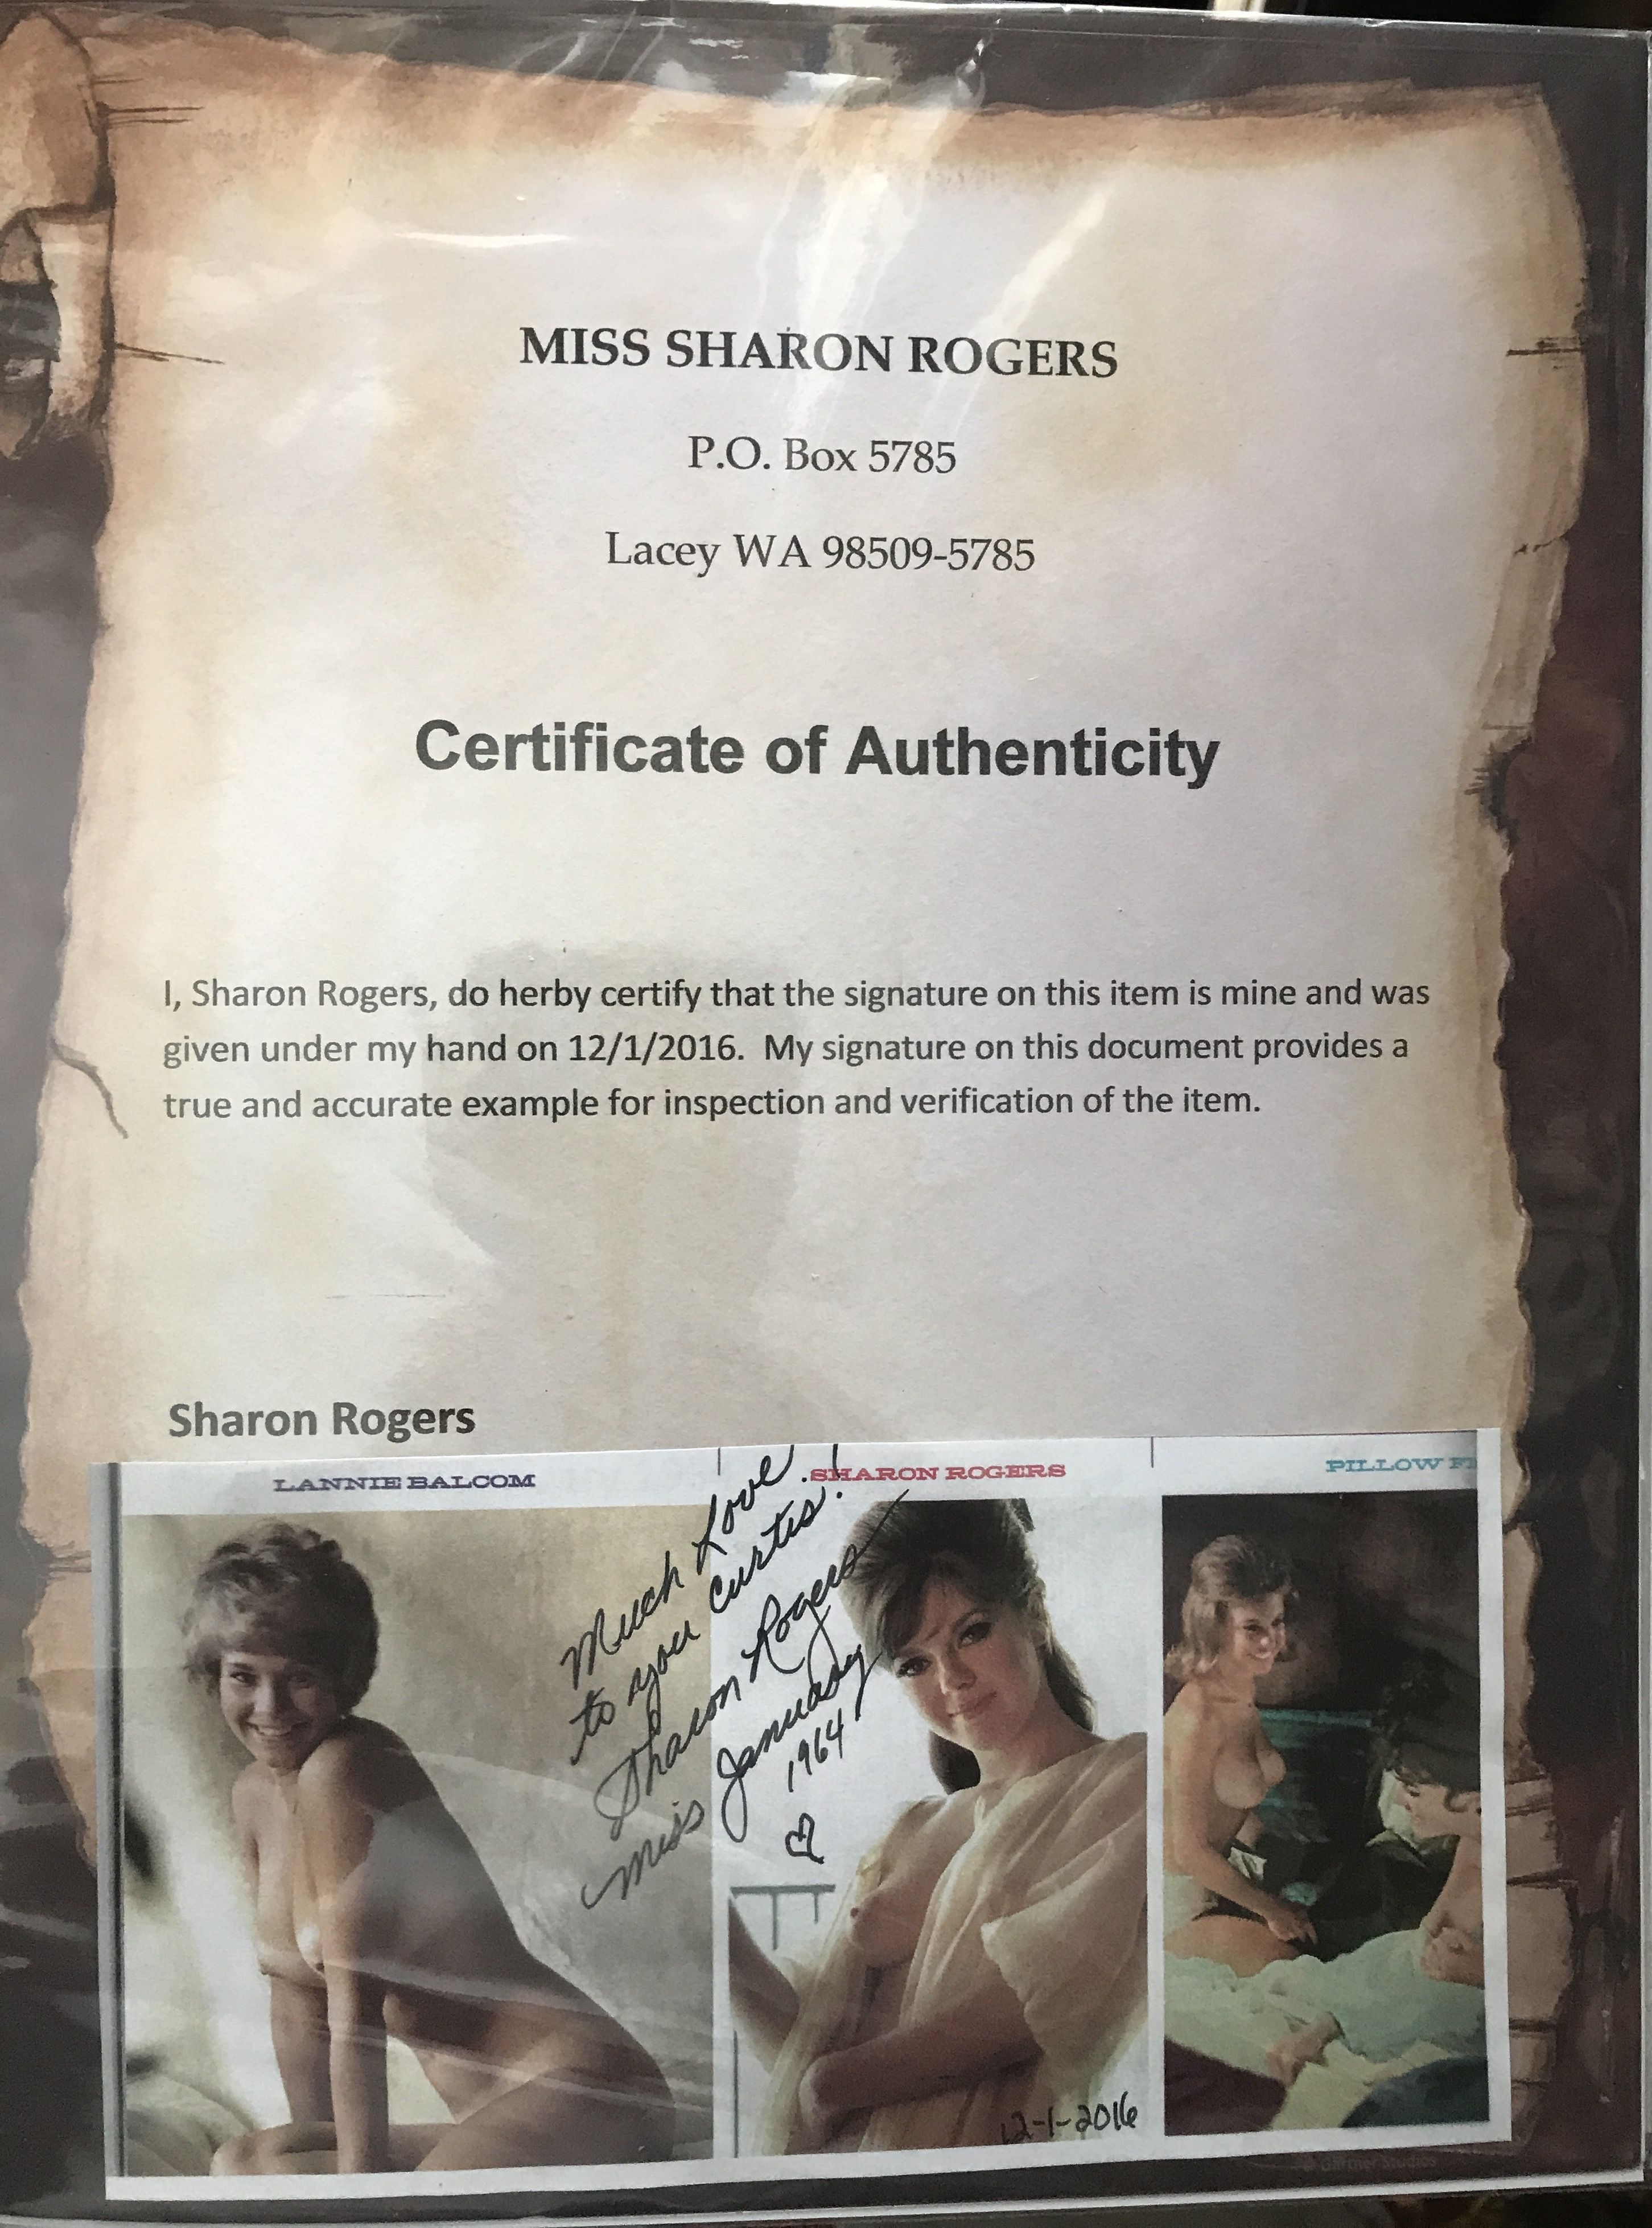 Here Is Another Example Of A Certificate Authenticity From Magazine That I Purchased Directly